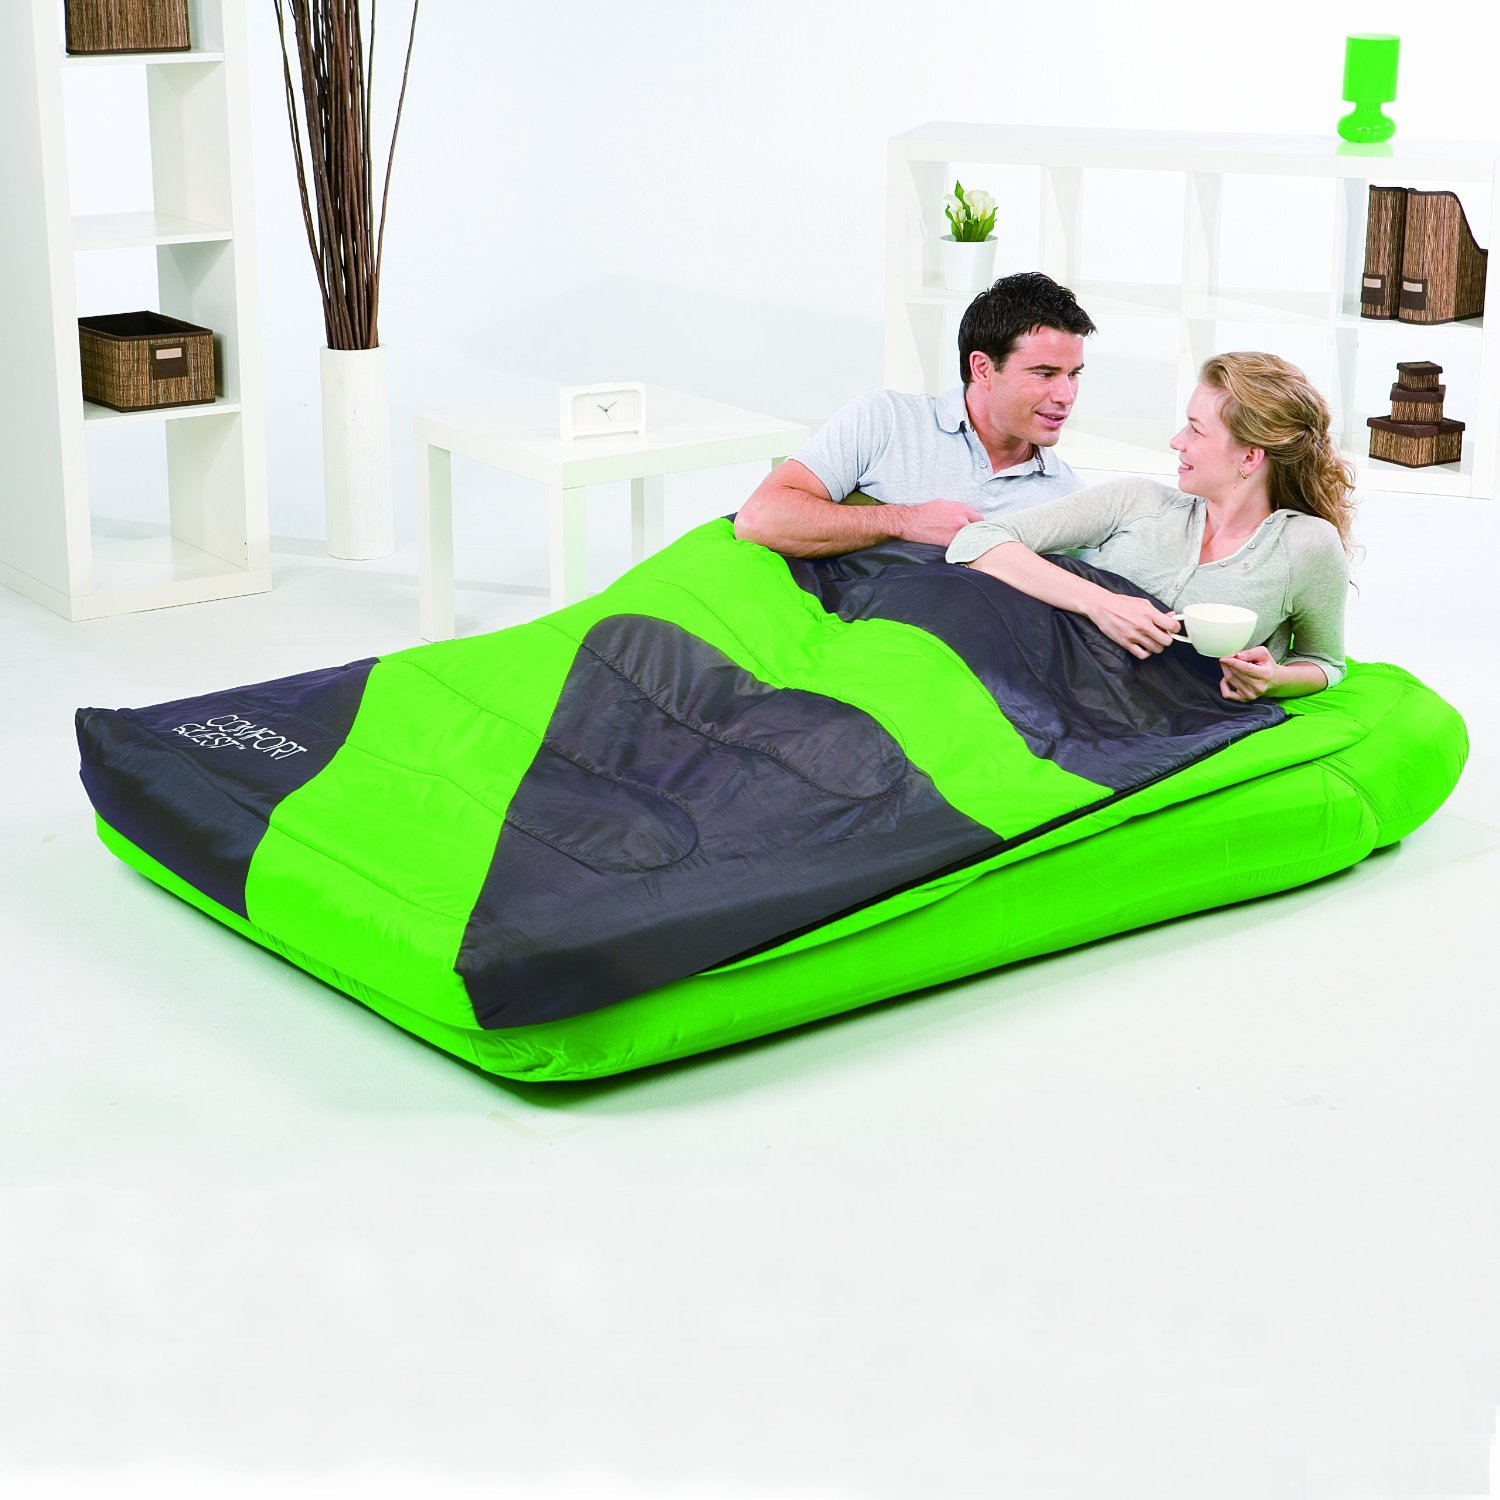 aslepa double sleeping bag airbed inflatable camping air bed mattress pillow ebay. Black Bedroom Furniture Sets. Home Design Ideas